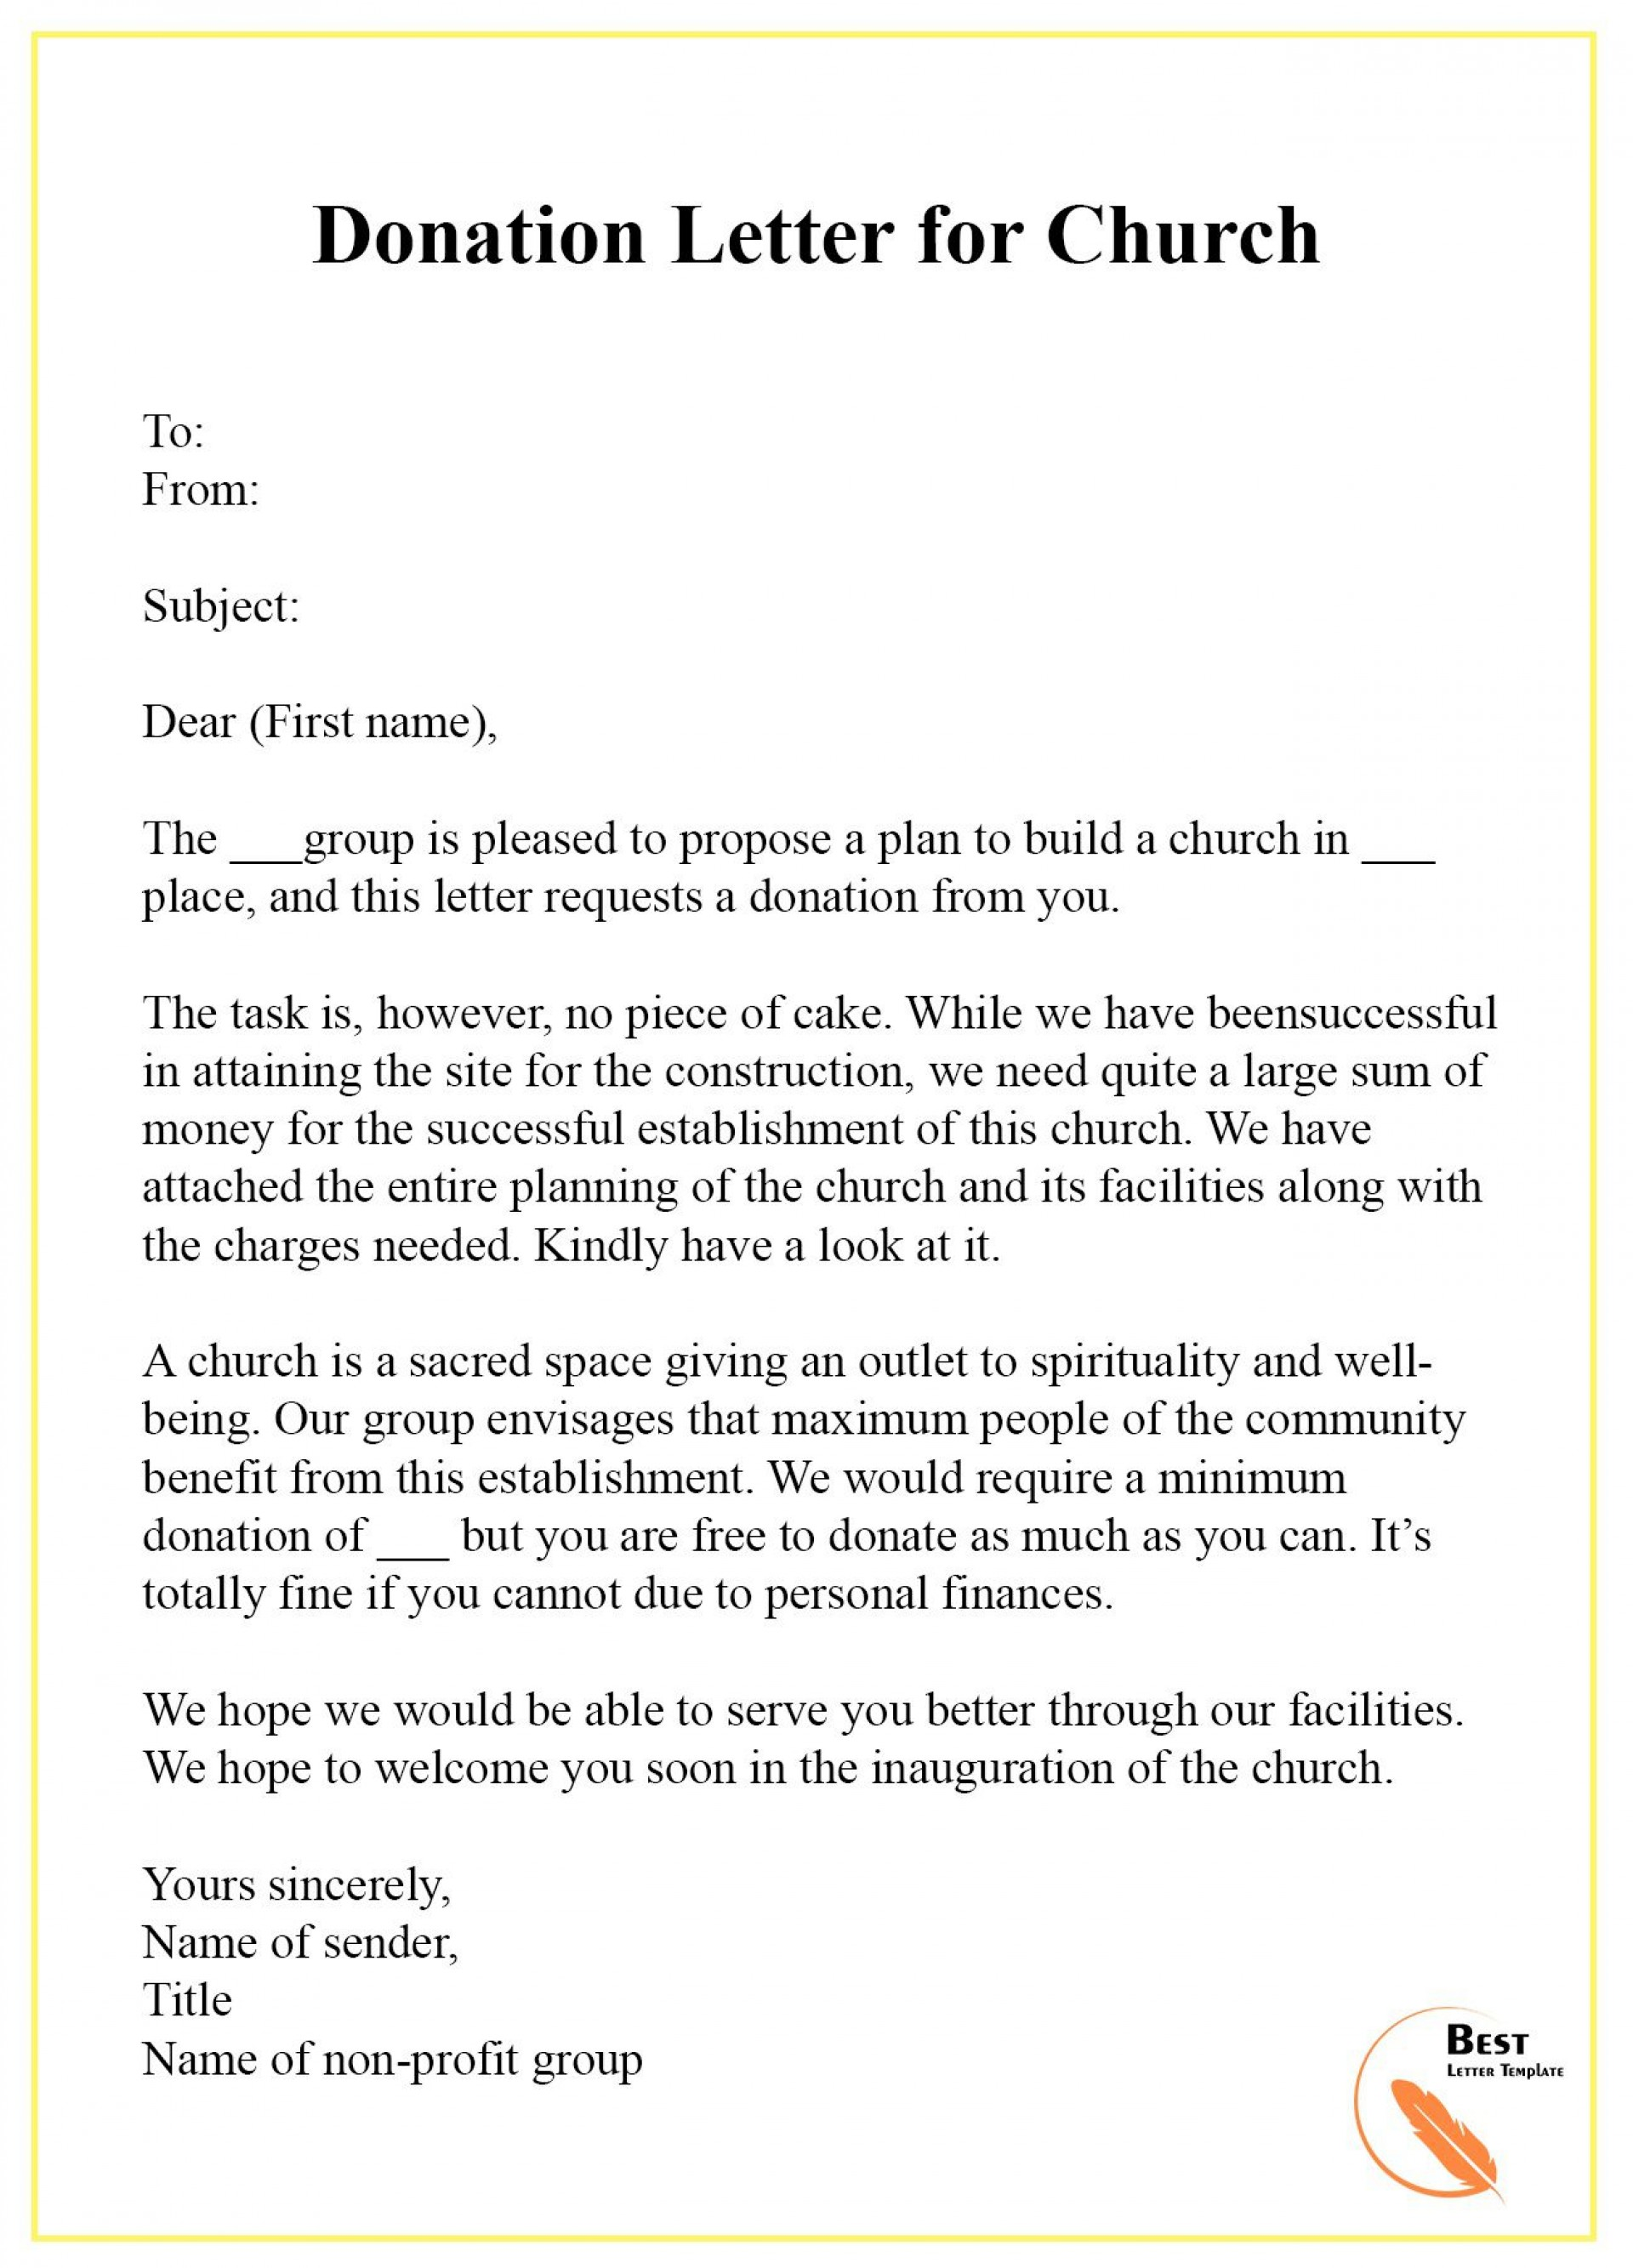 003 Amazing Fund Raising Letter Template High Definition  Templates Example Of Fundraising Appeal For Mission Trip Uk1920